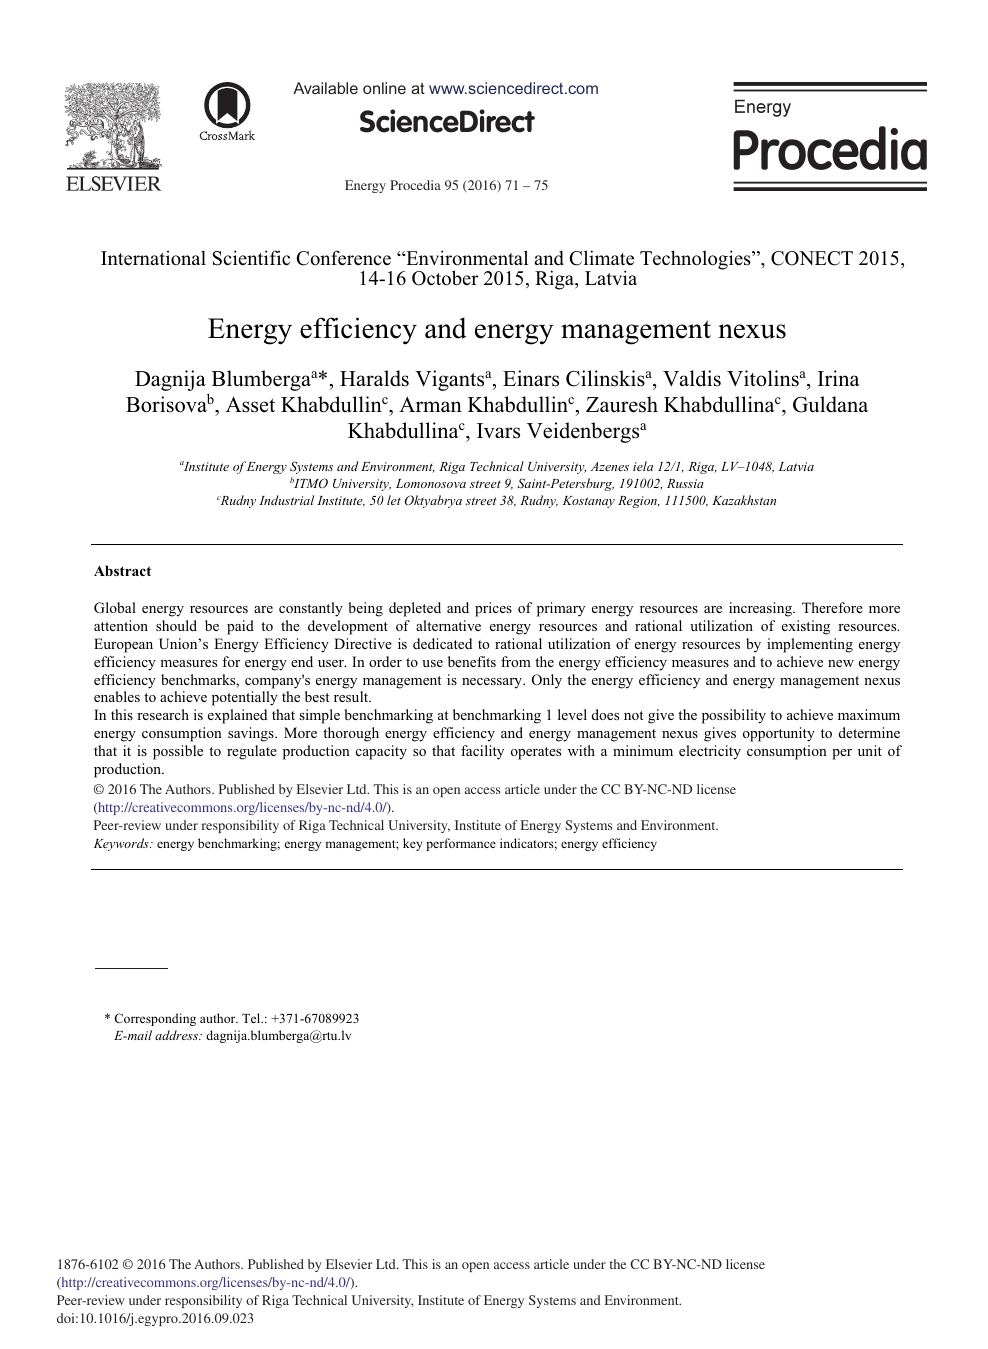 Energy Efficiency and Energy Management Nexus – topic of research